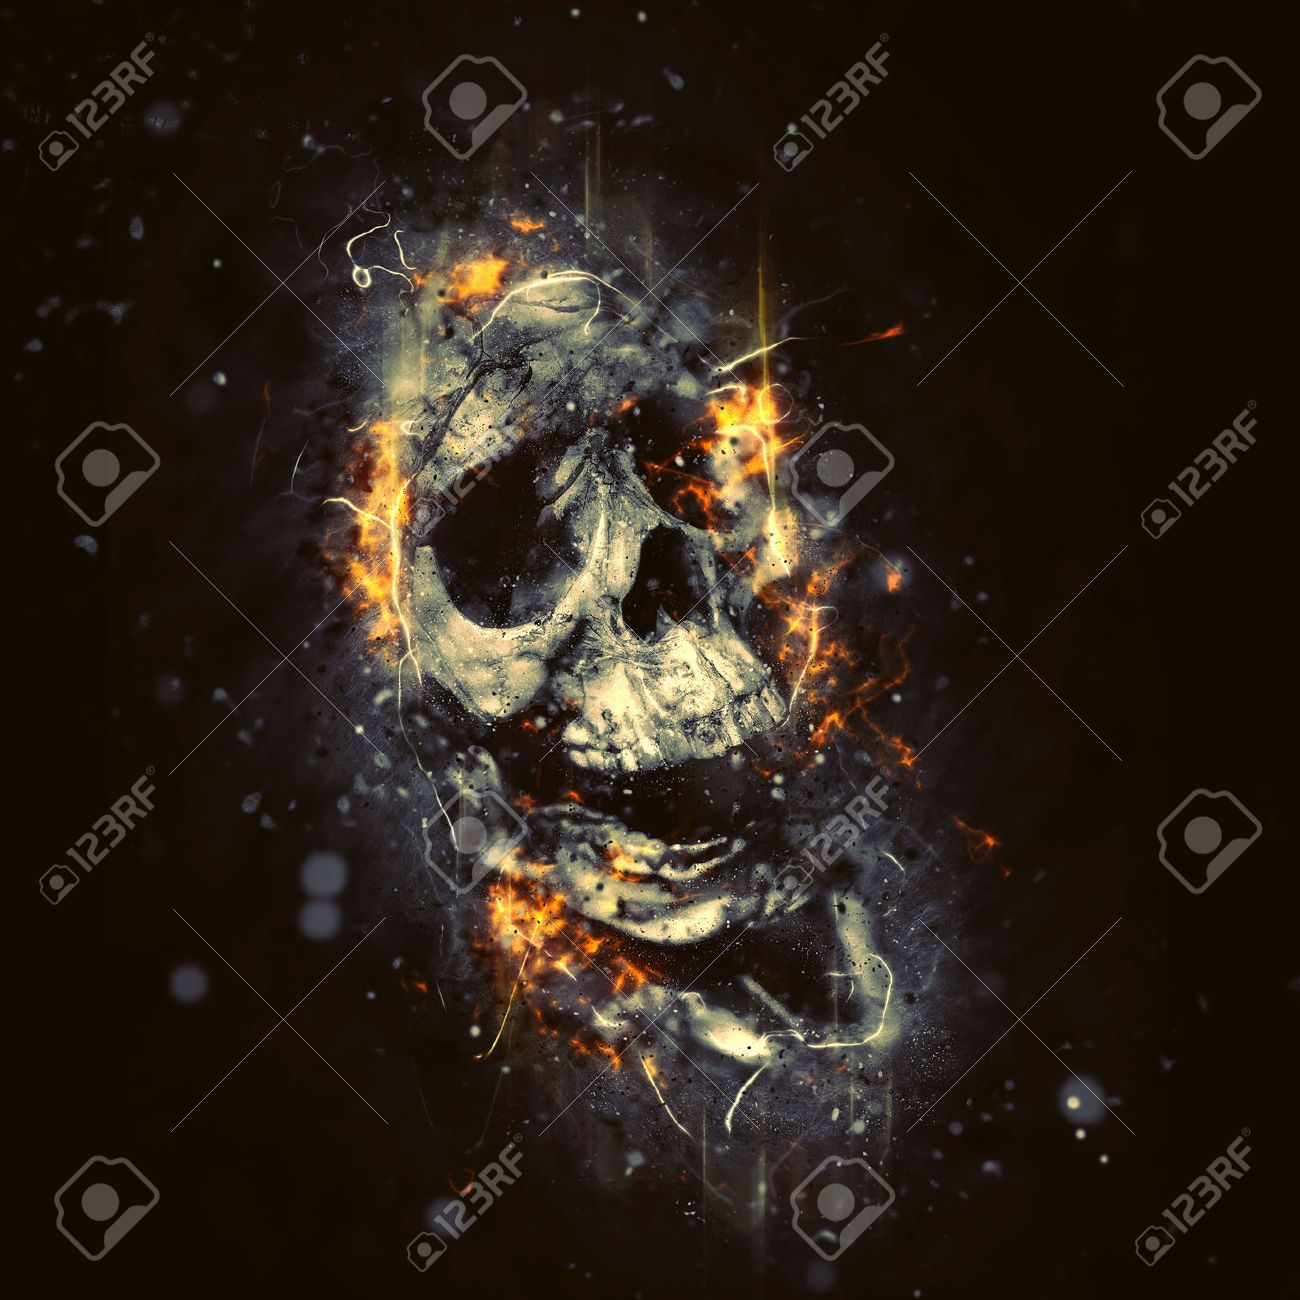 Scary Face Stock Photos. Royalty Free Business Images